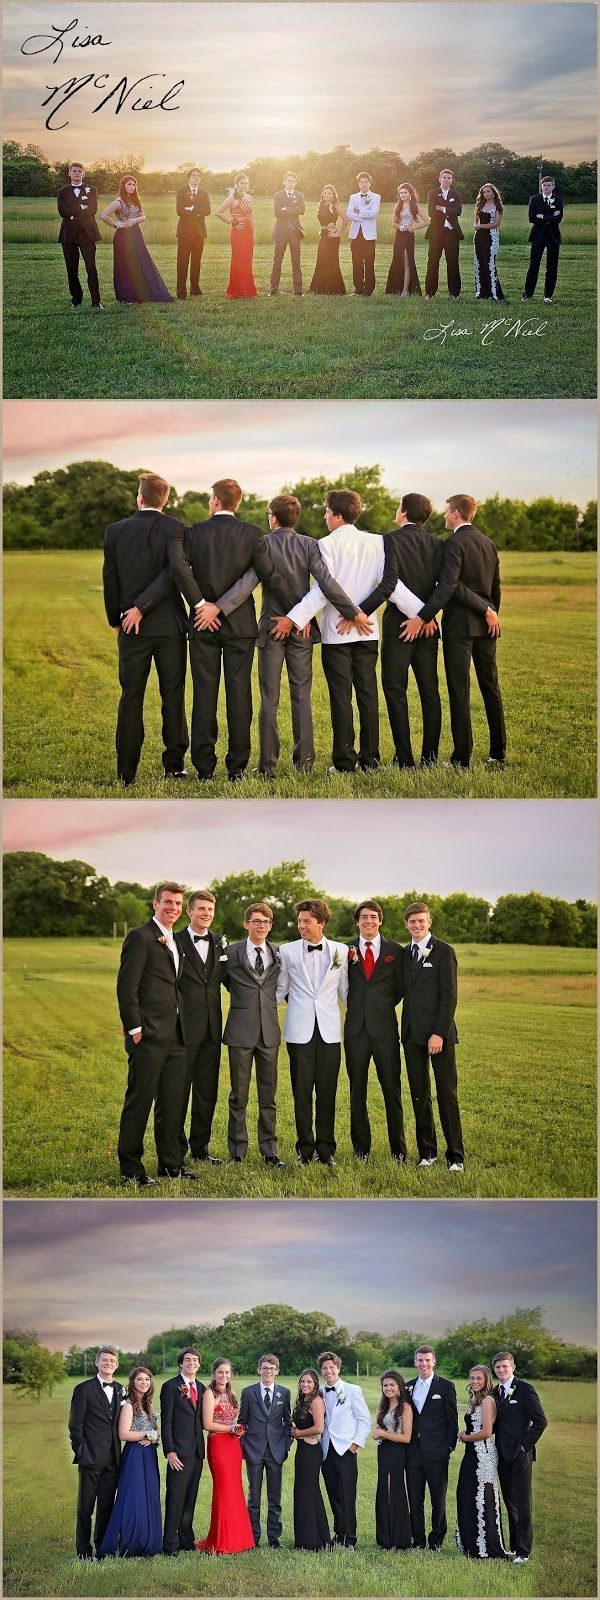 Group pictures for prom - ideas from Texas photographer Lisa McNiel #promphotographyposes